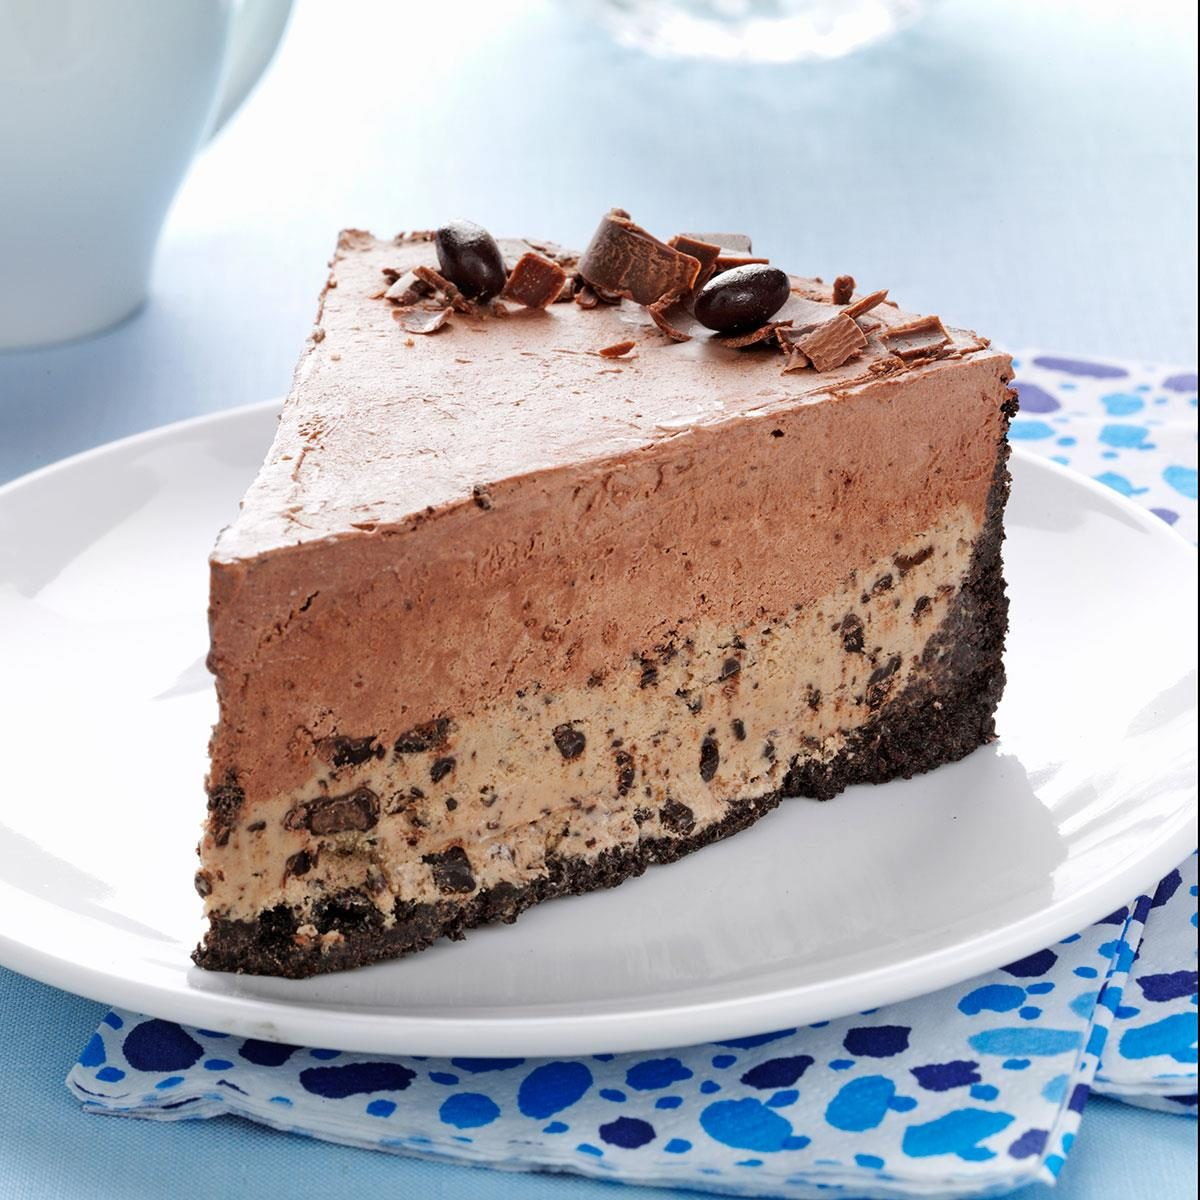 Chocolate-Coffee Bean Ice Cream Cake Recipe | Taste of Home